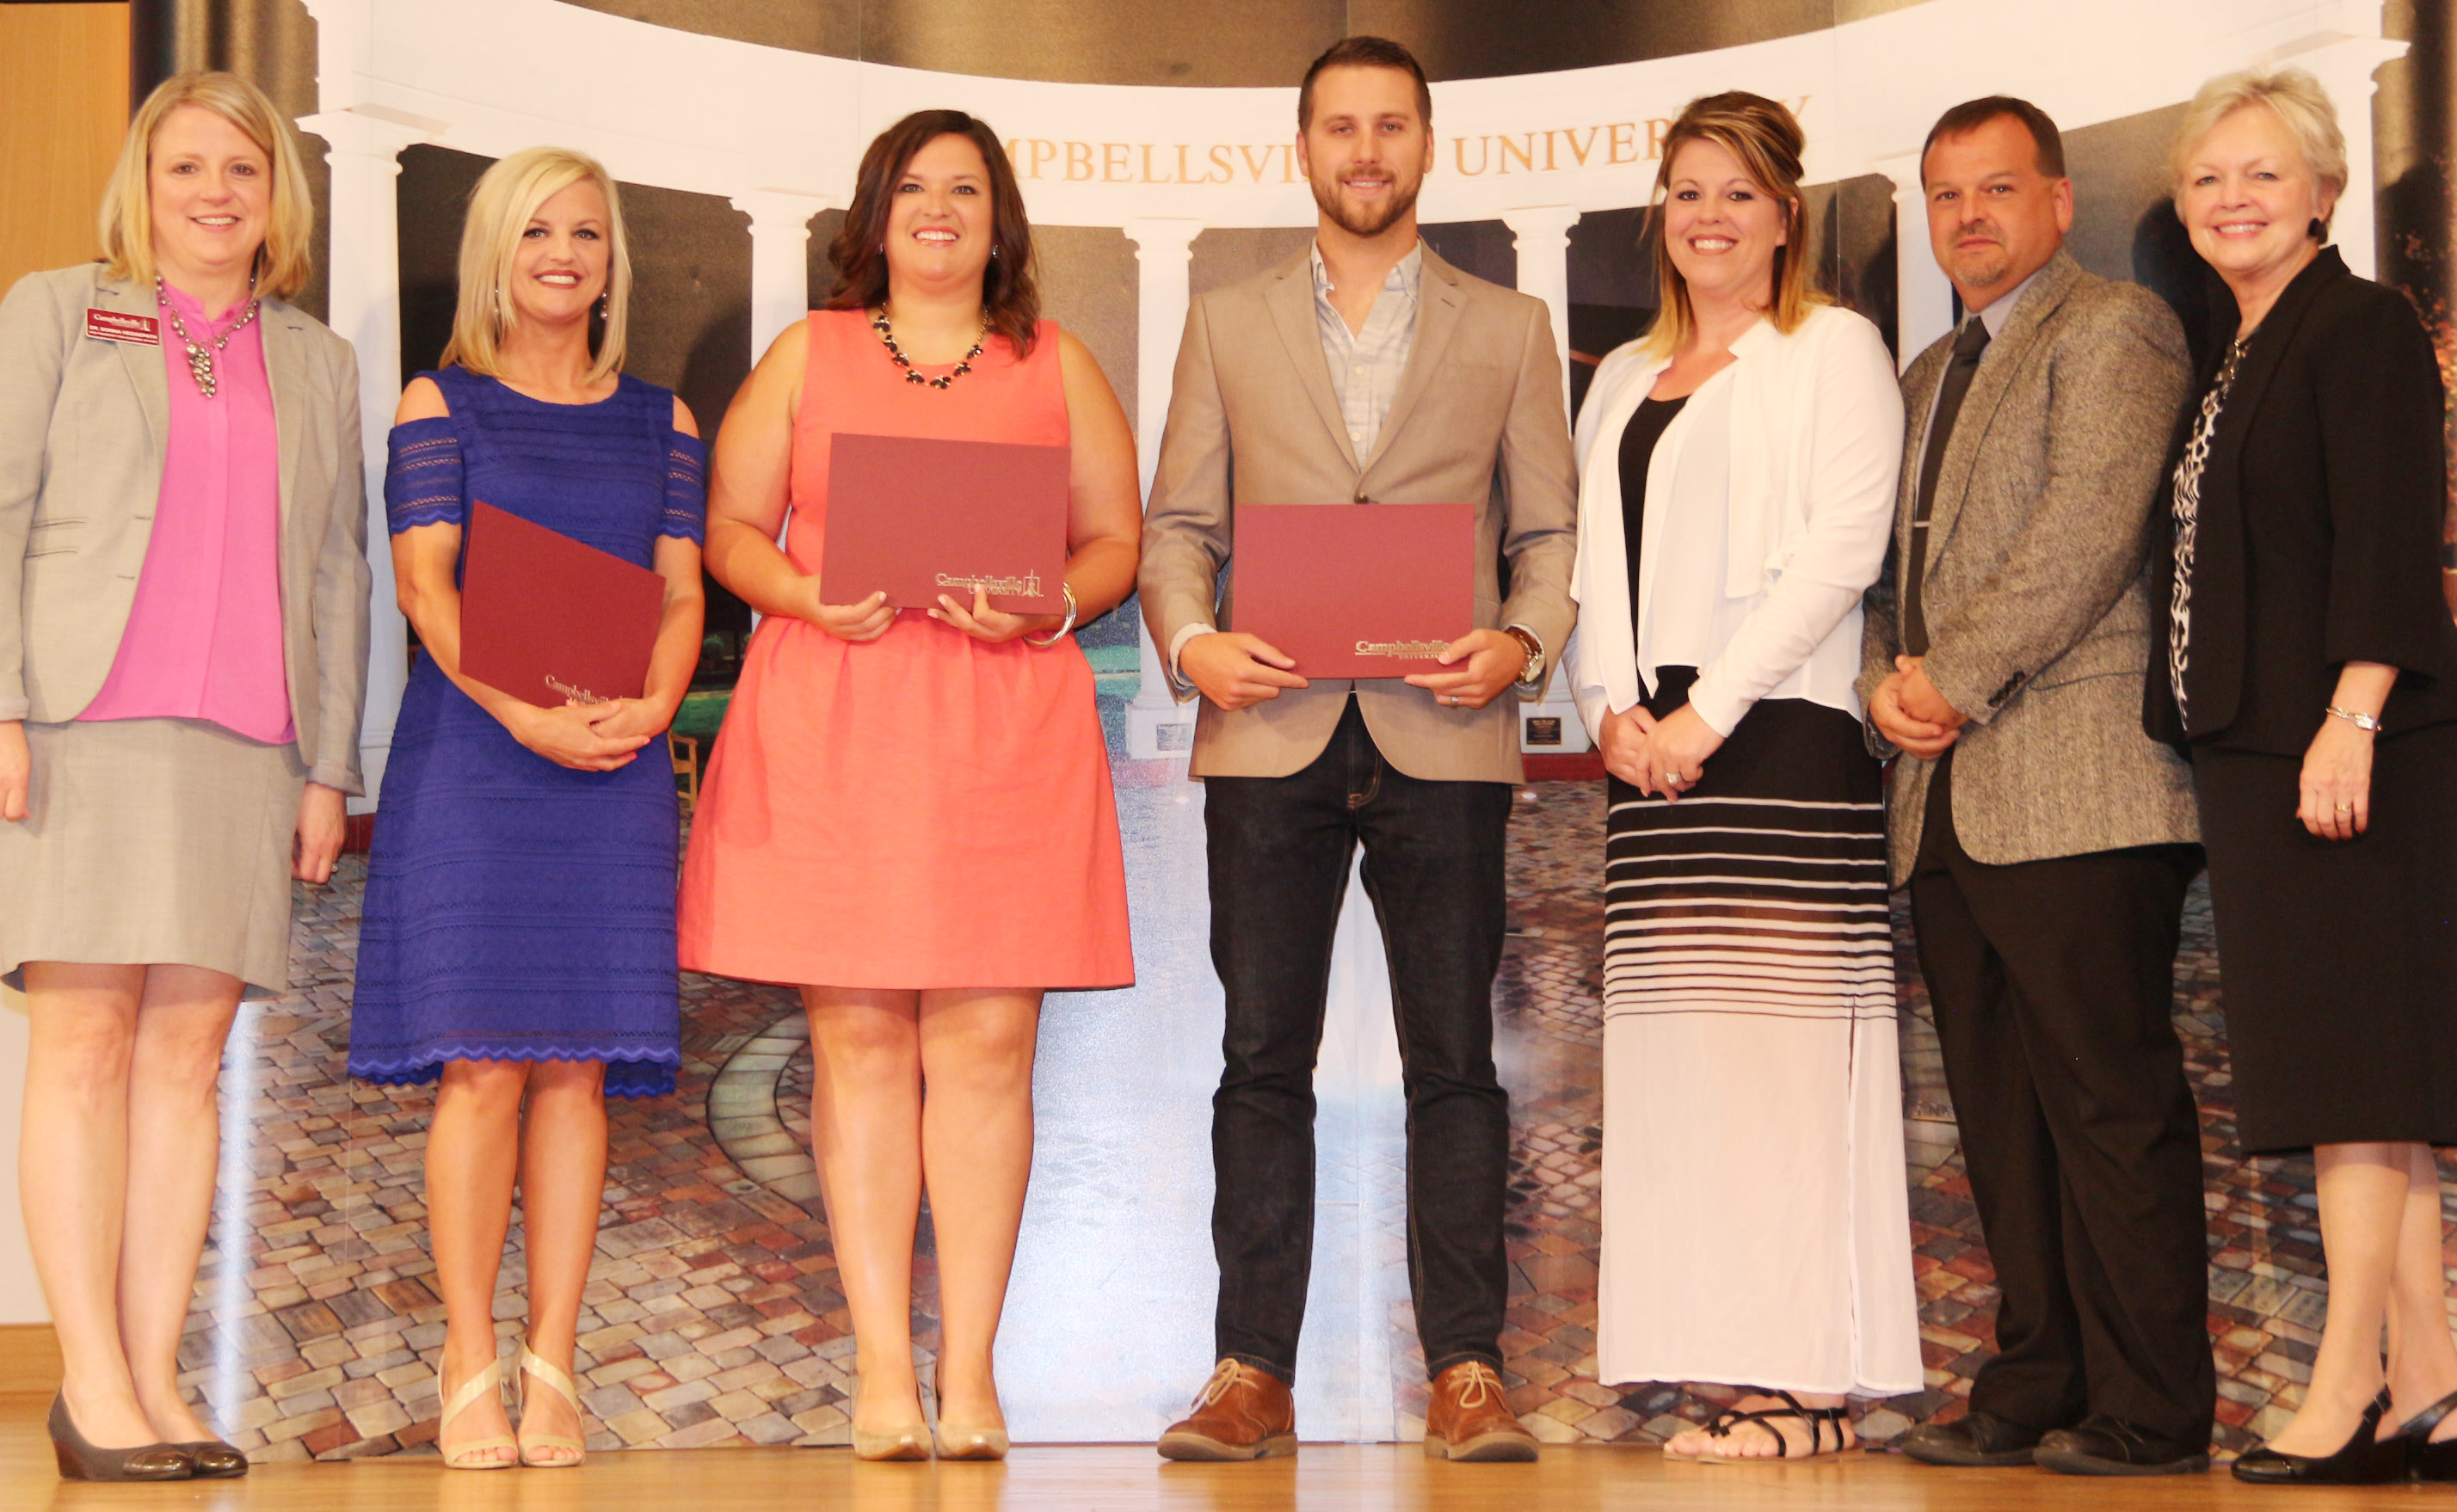 Campbellsville Independent Schools' teachers were honored at Campbellsville University's Excellence in Teaching Awards ceremony on Saturday, May 20. From left are CU Vice President for Academic Affairs Donna Hedgepath, CES kindergarten teacher Leanna Cundiff, CMS eighth-grade teacher Robbilyn Speer, CHS teacher Tyler Hardy, CMS Principal Elisha Rhodes, CES Principal Ricky Hunt and Dr. Beverly Ennis, dean of the CU School of Education.